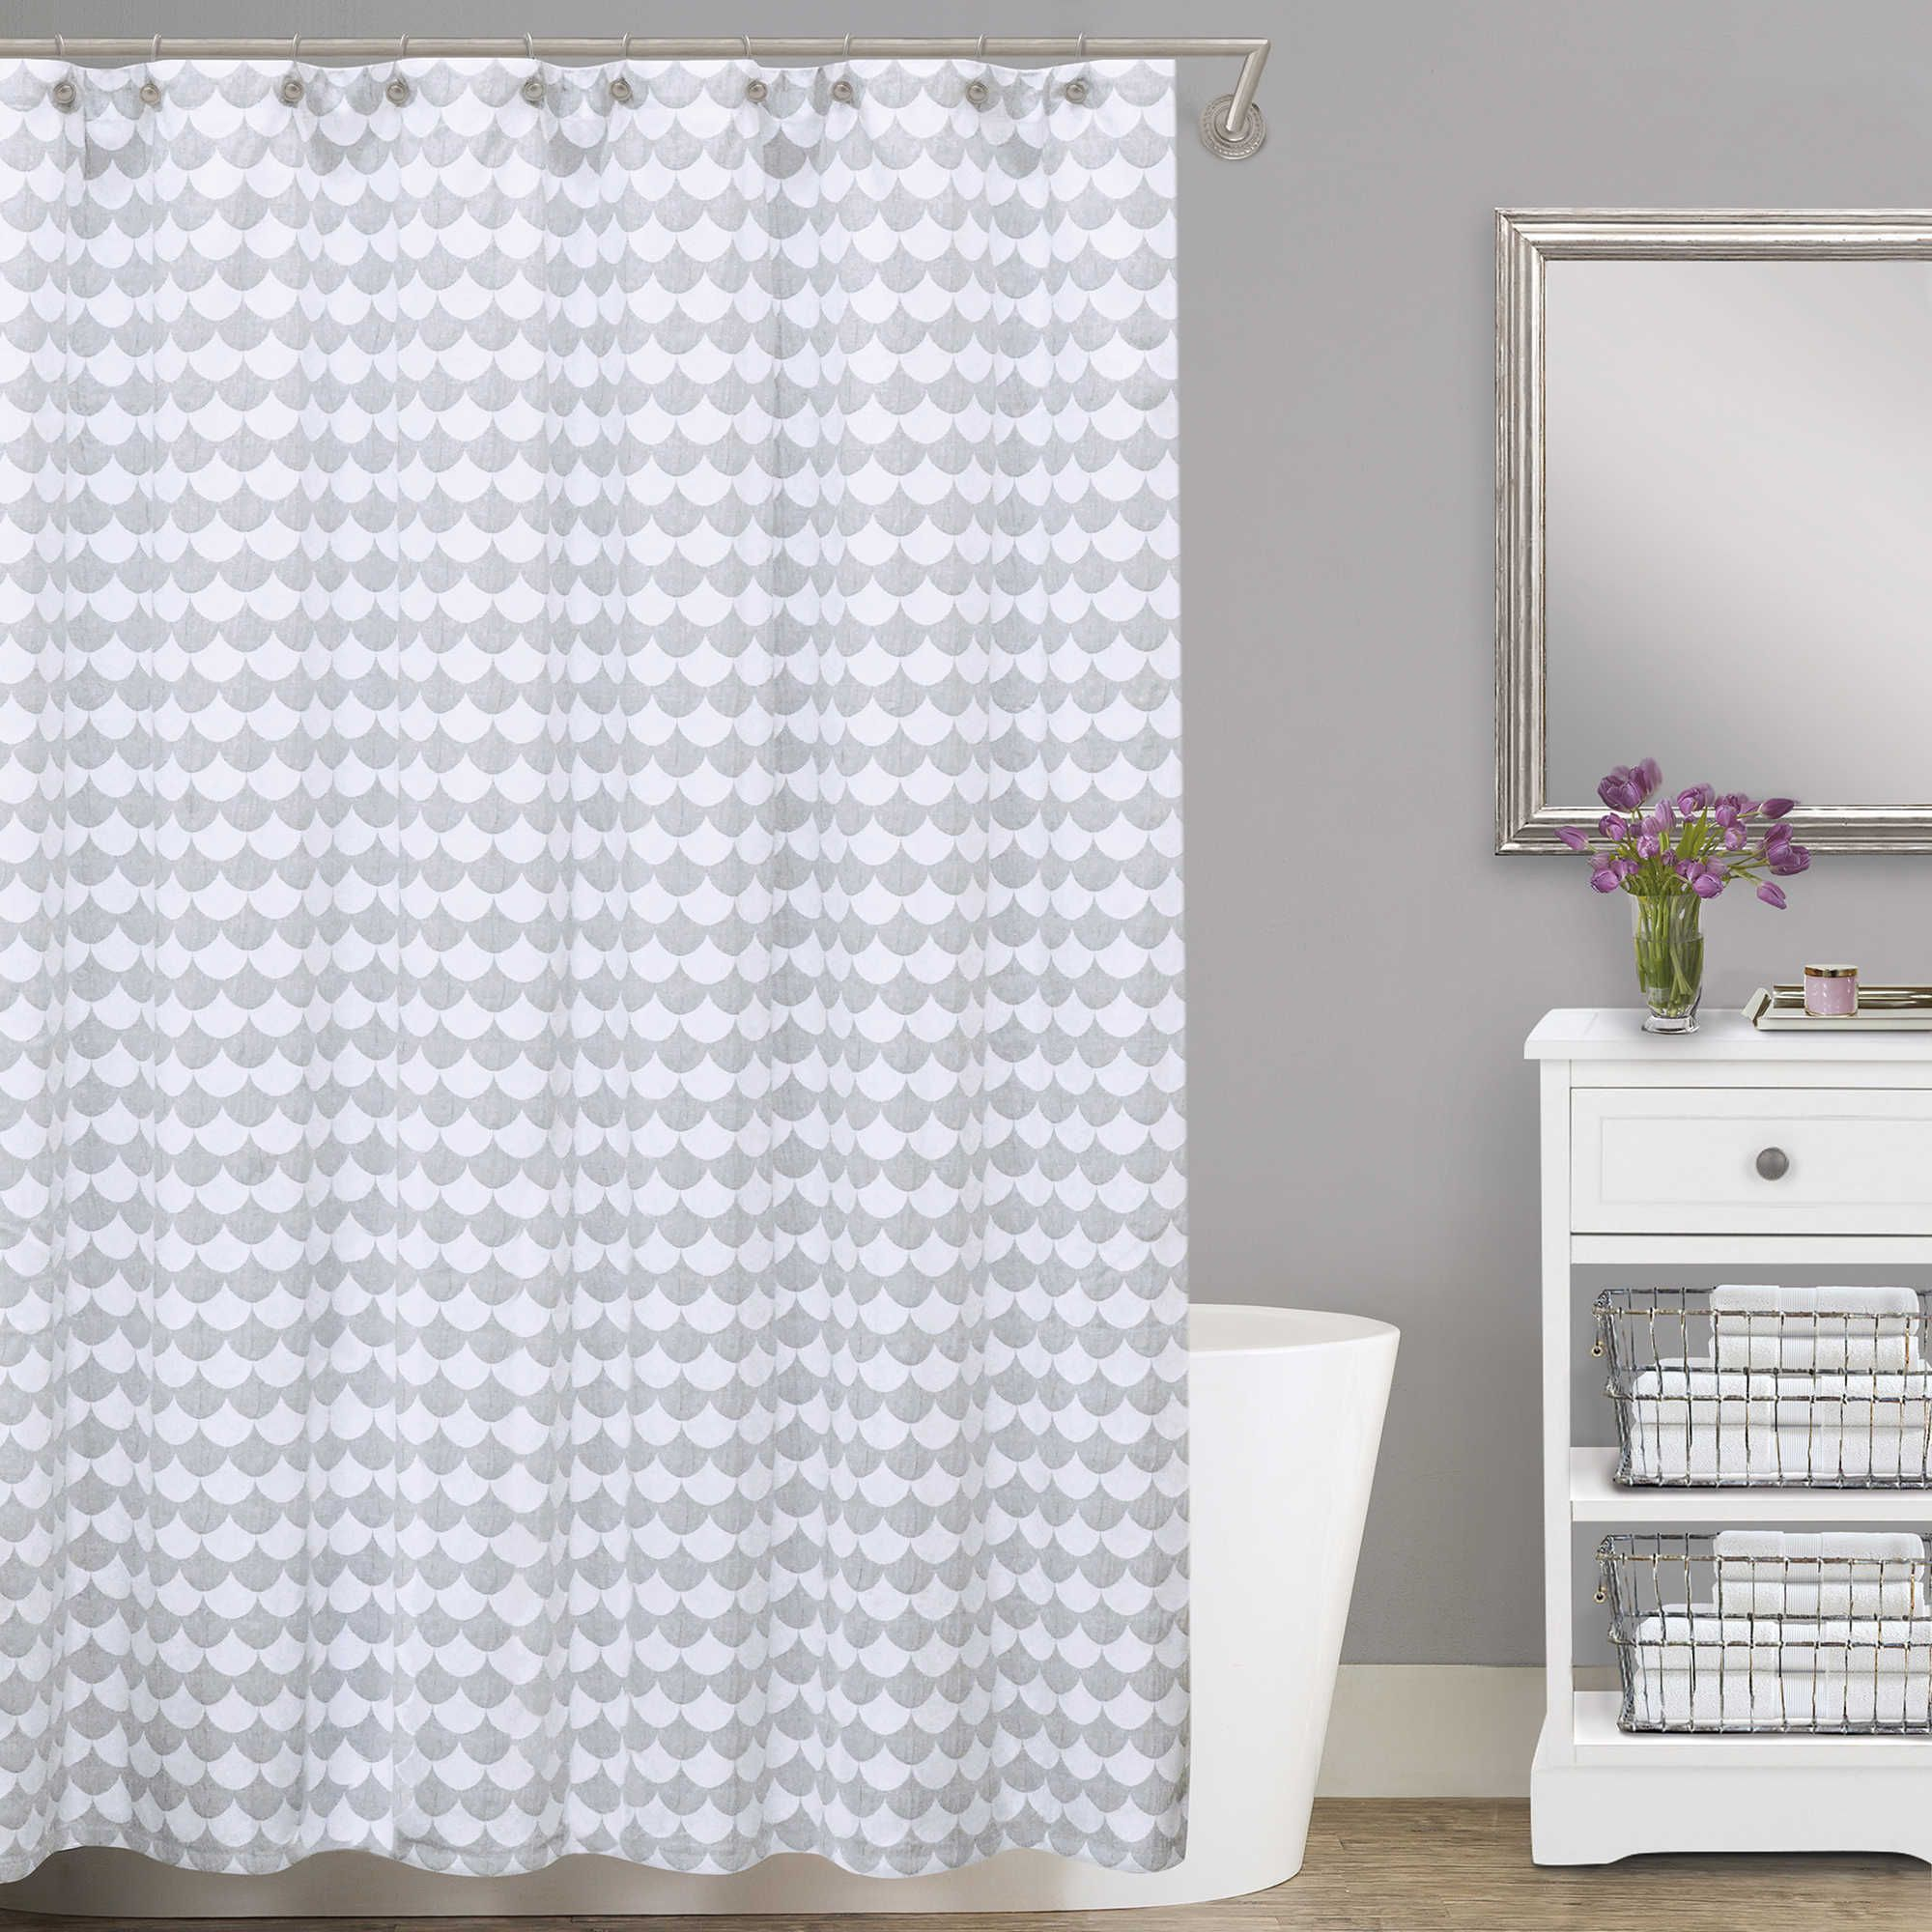 Lamont HomeR Finley Cotton Matelasse Shower Curtain